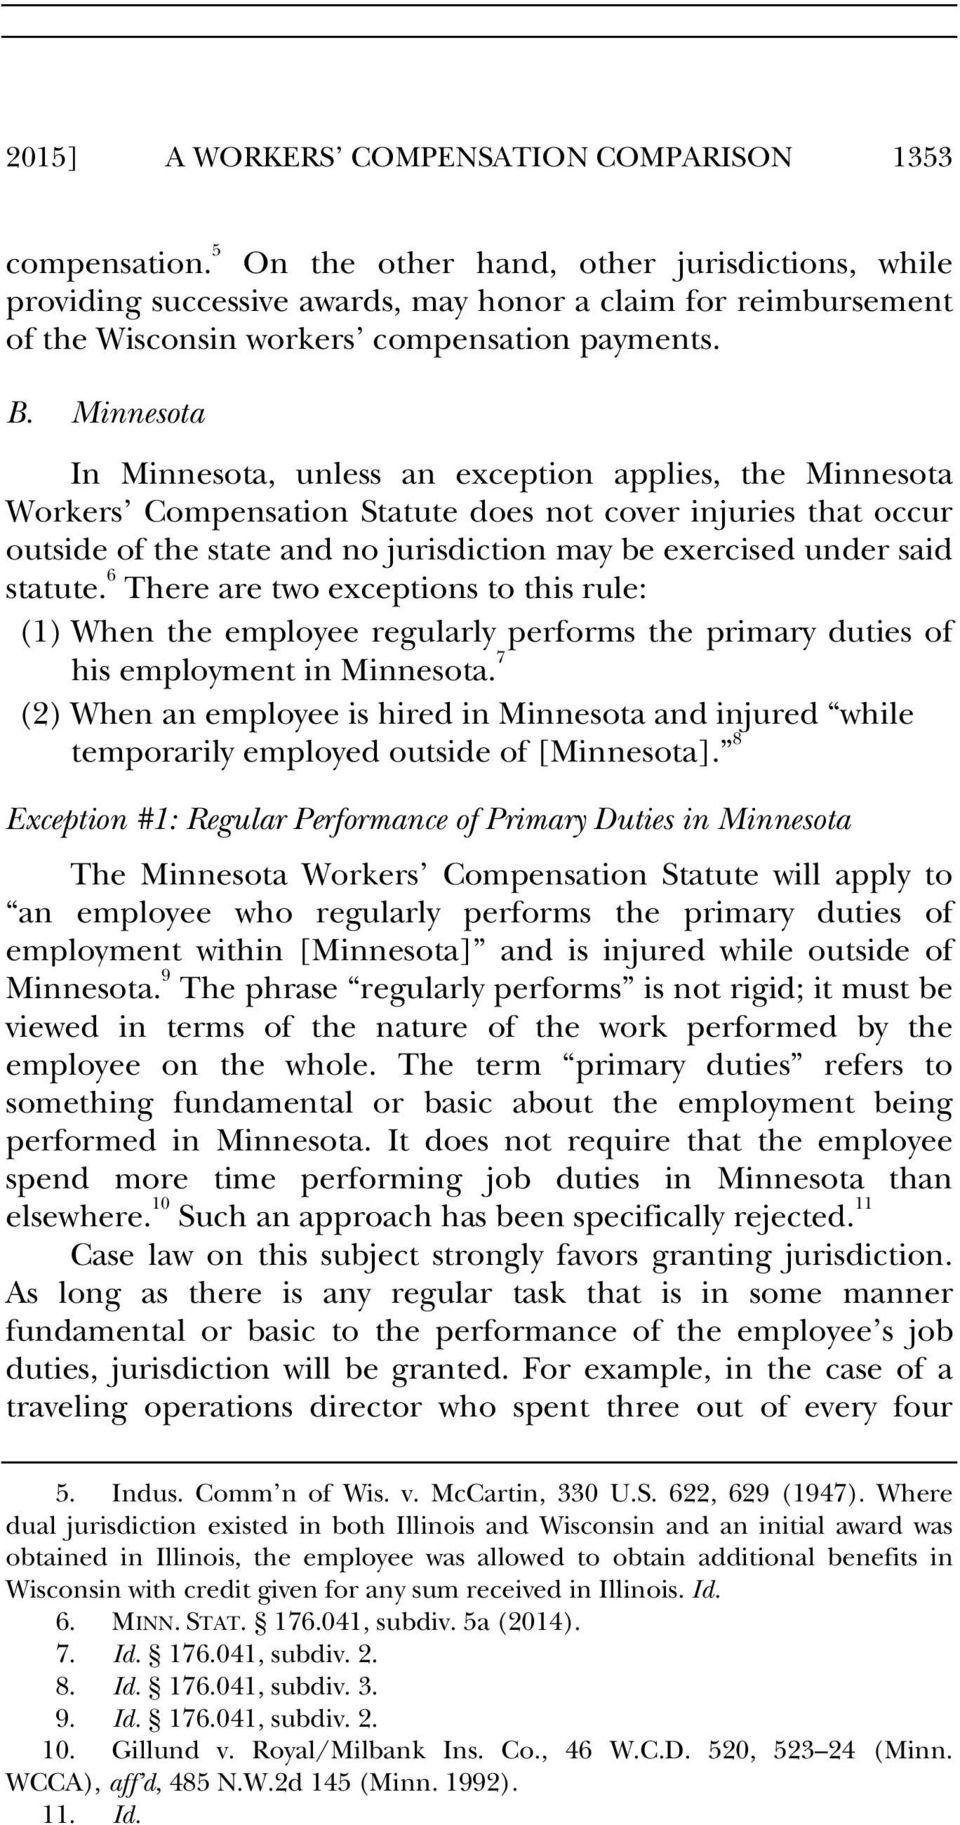 Minnesota In Minnesota, unless an exception applies, the Minnesota Workers Compensation Statute does not cover injuries that occur outside of the state and no jurisdiction may be exercised under said